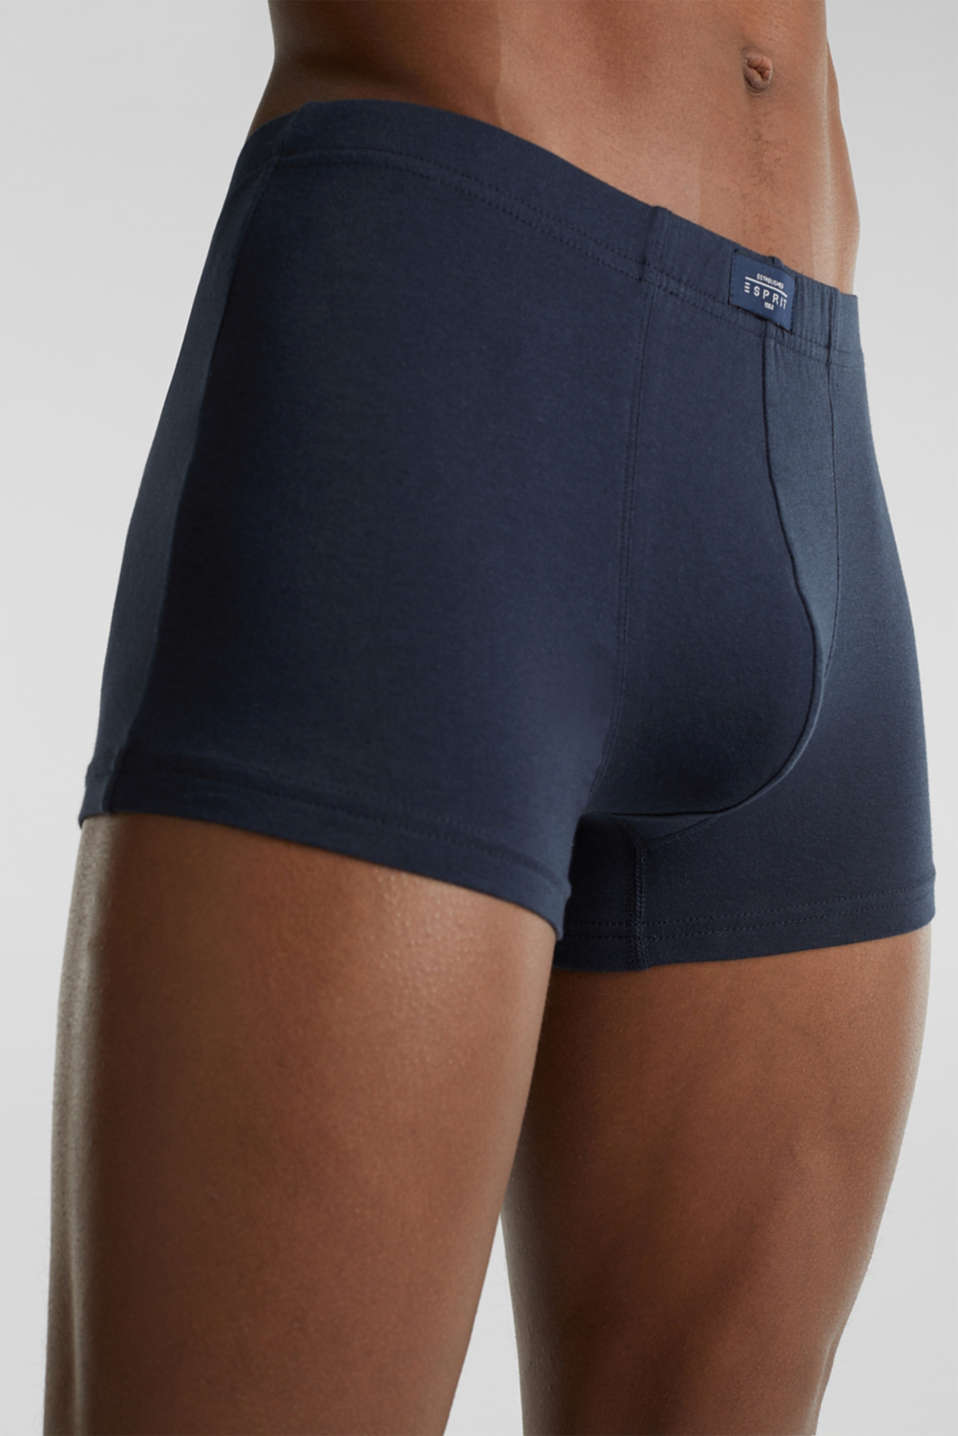 Stretch cotton shorts in a six-pack, BLACK, detail image number 2